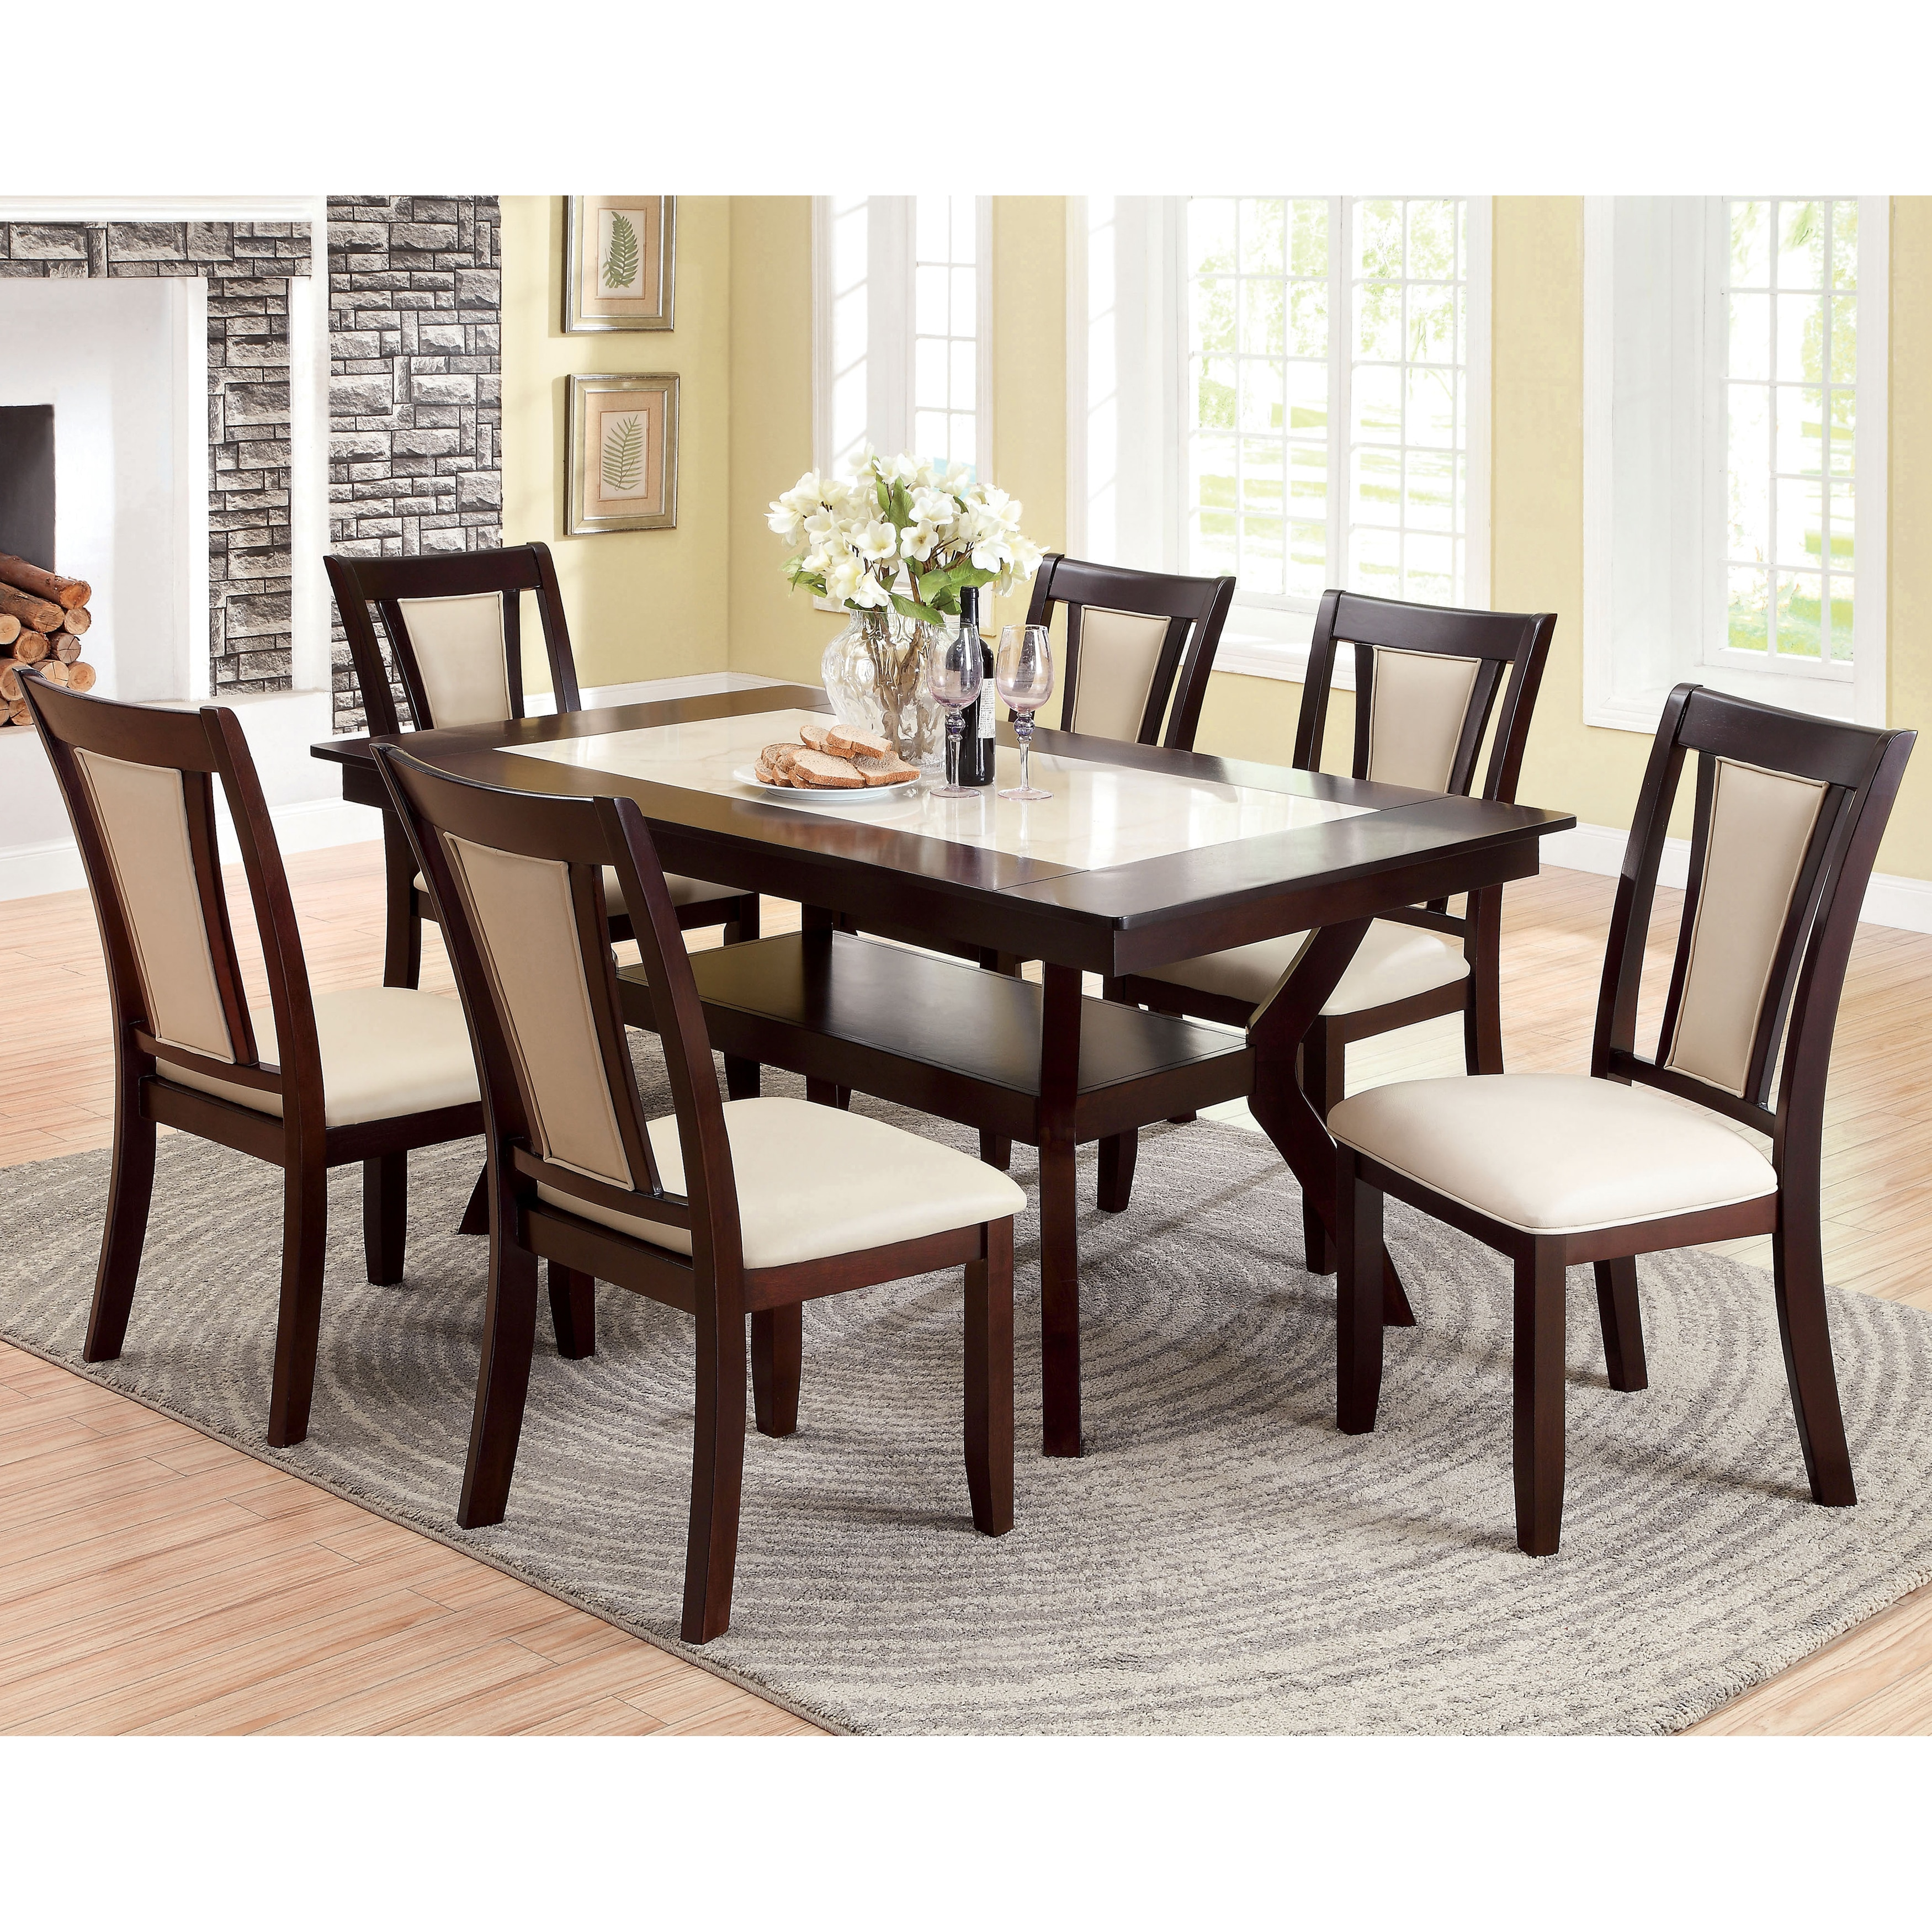 Furniture of America Kateria Dark Cherry 7-piece Dining S...